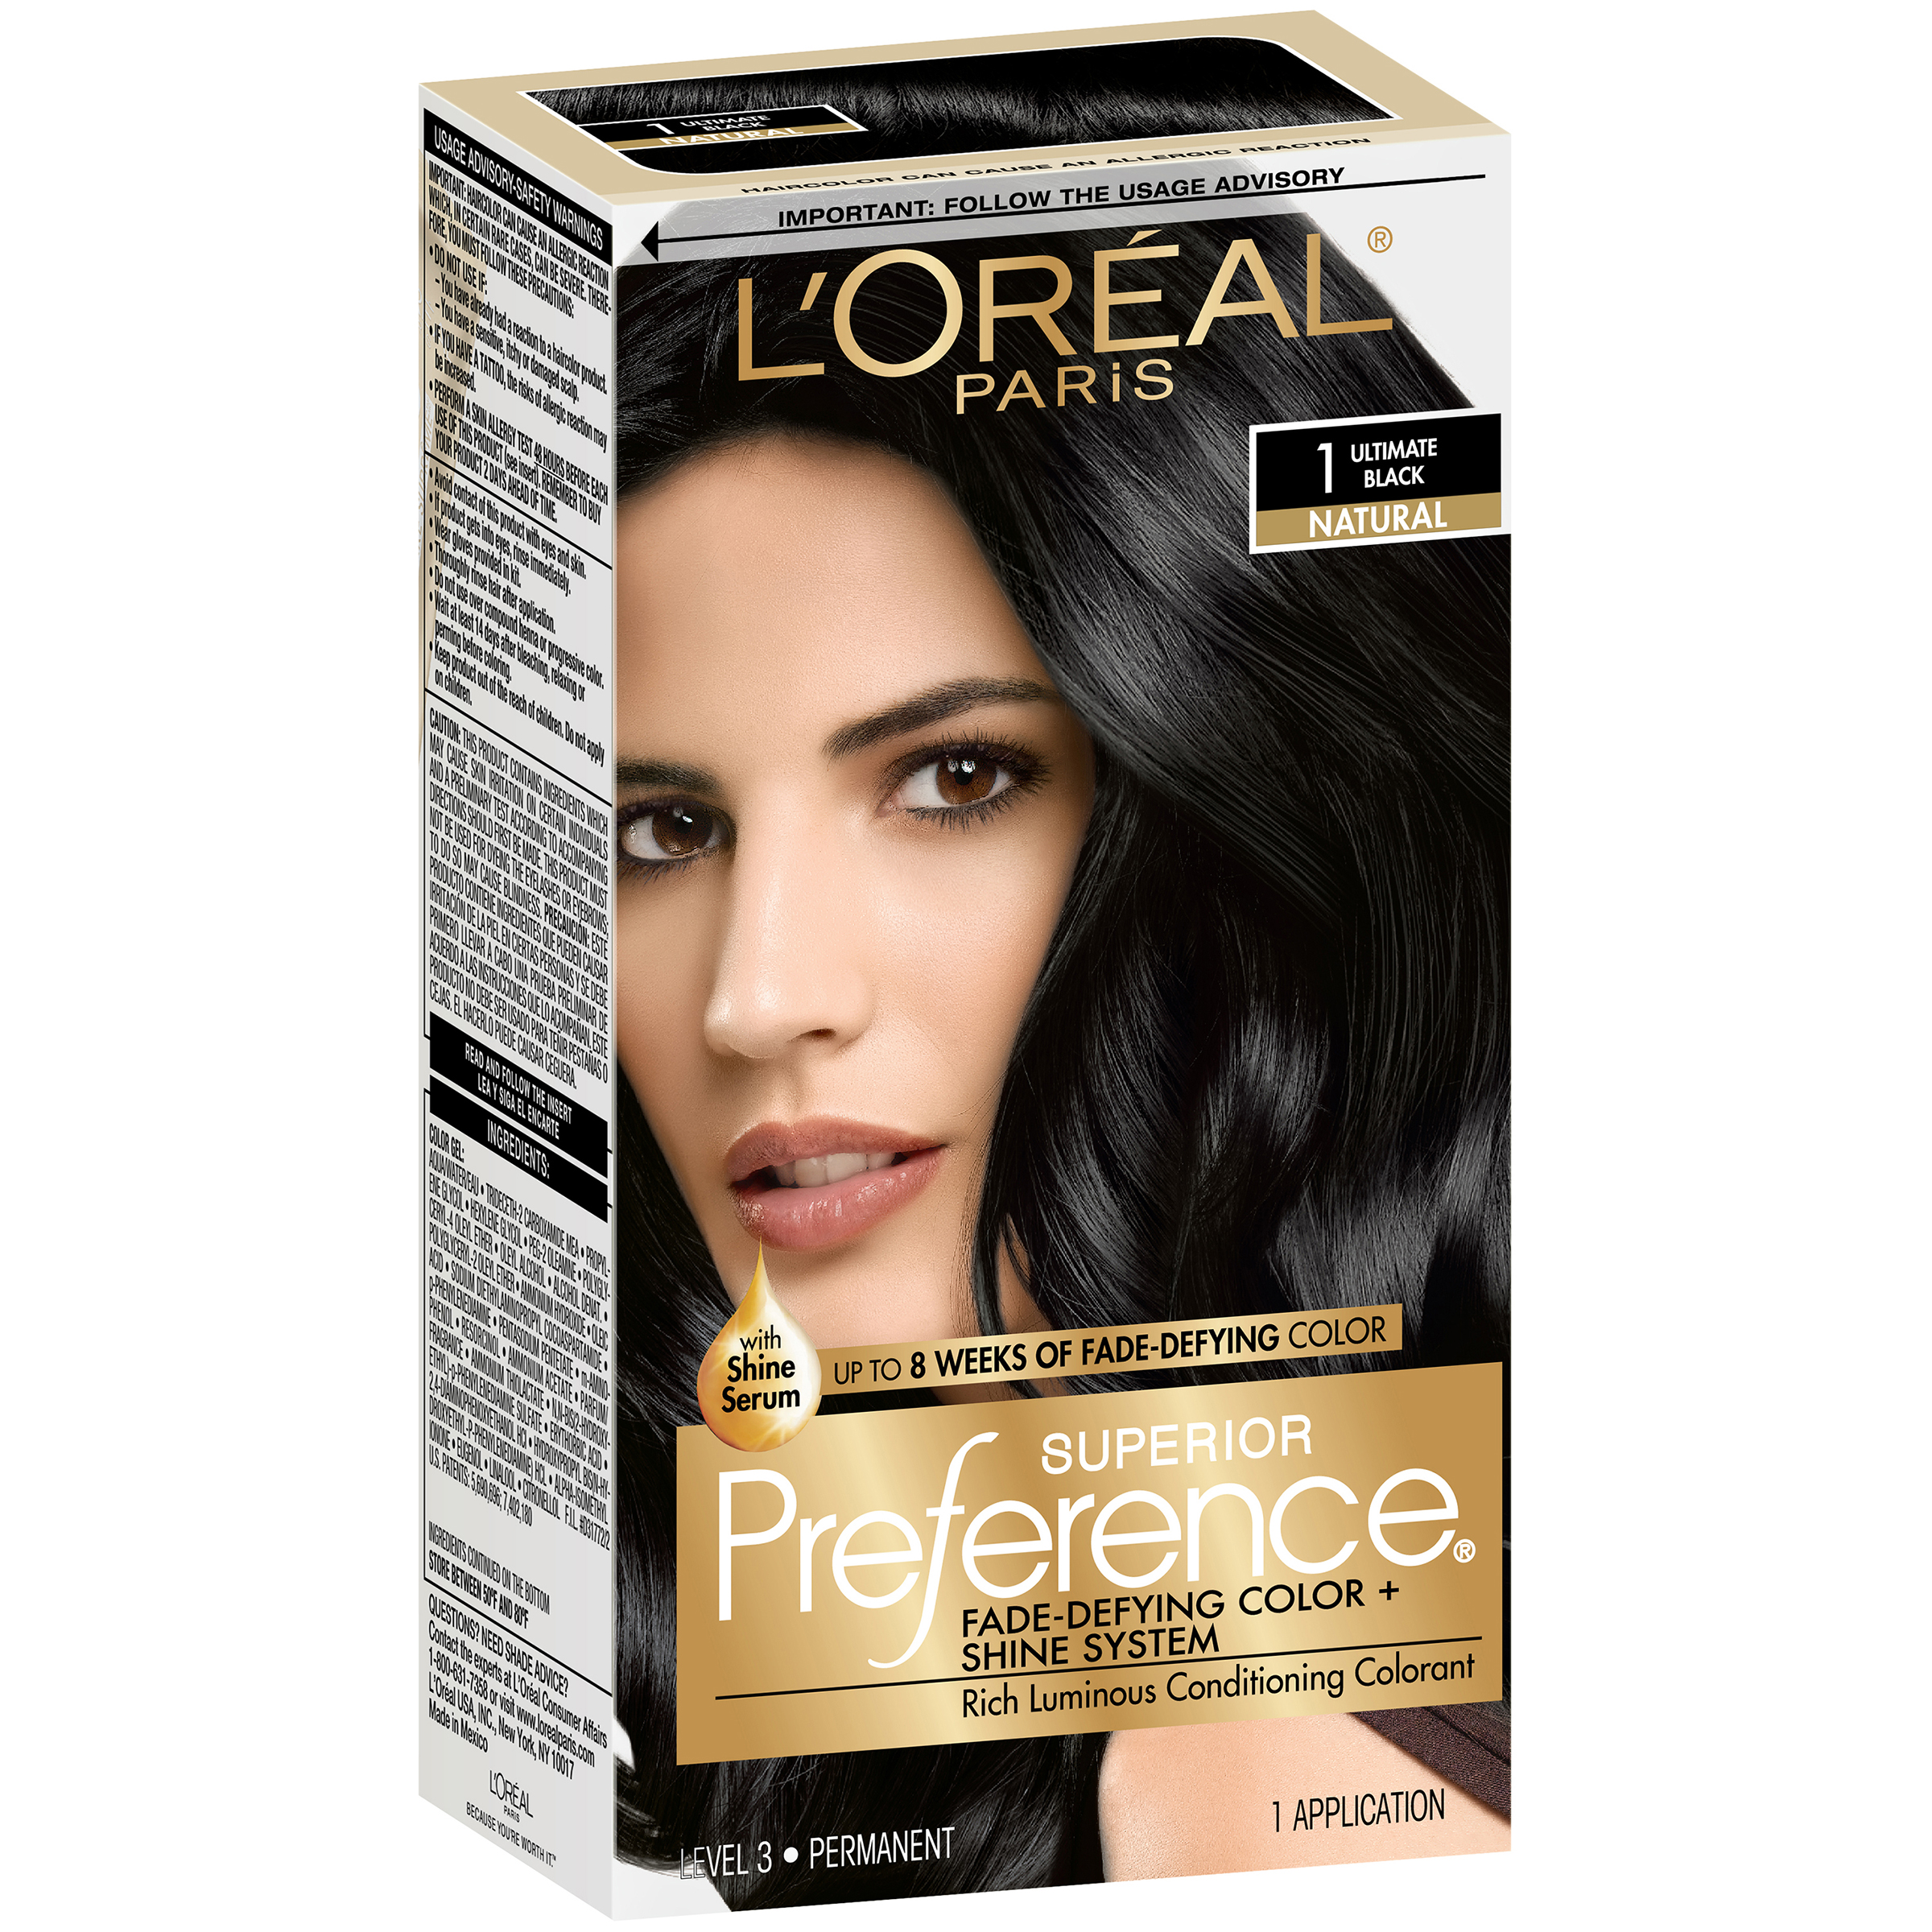 Gambar Loreal Home Hair Dye Kit Stock Photo 54640674 Alamy Jpeg Png